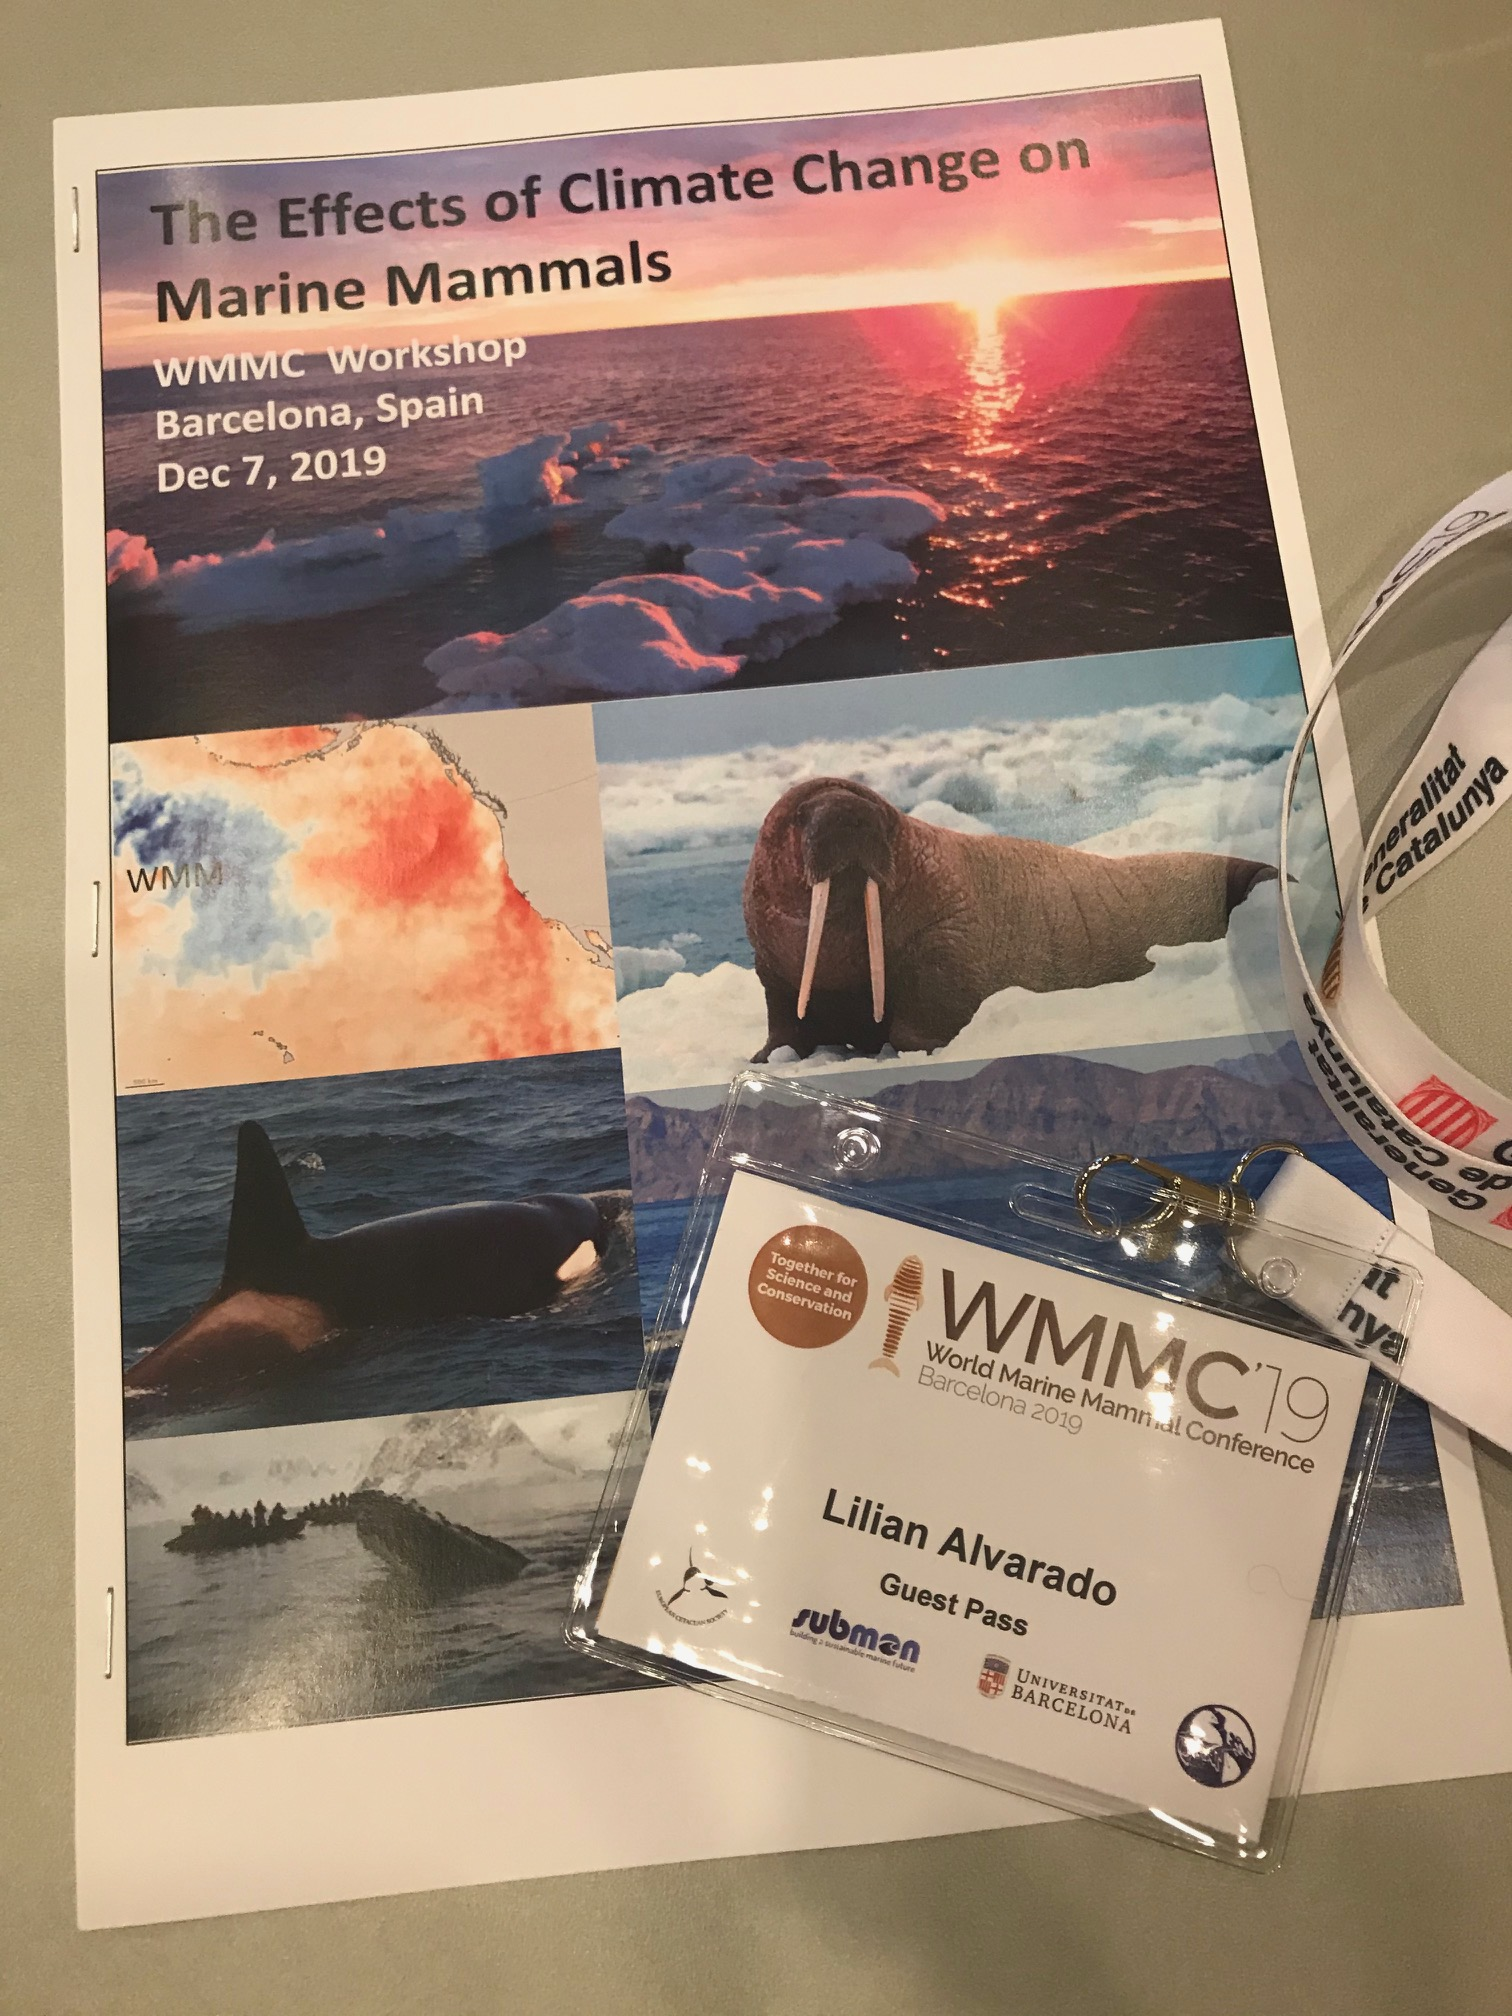 A Pamphlet With Pictures And The Text The Effects Of Climate Change On Marine Mammals